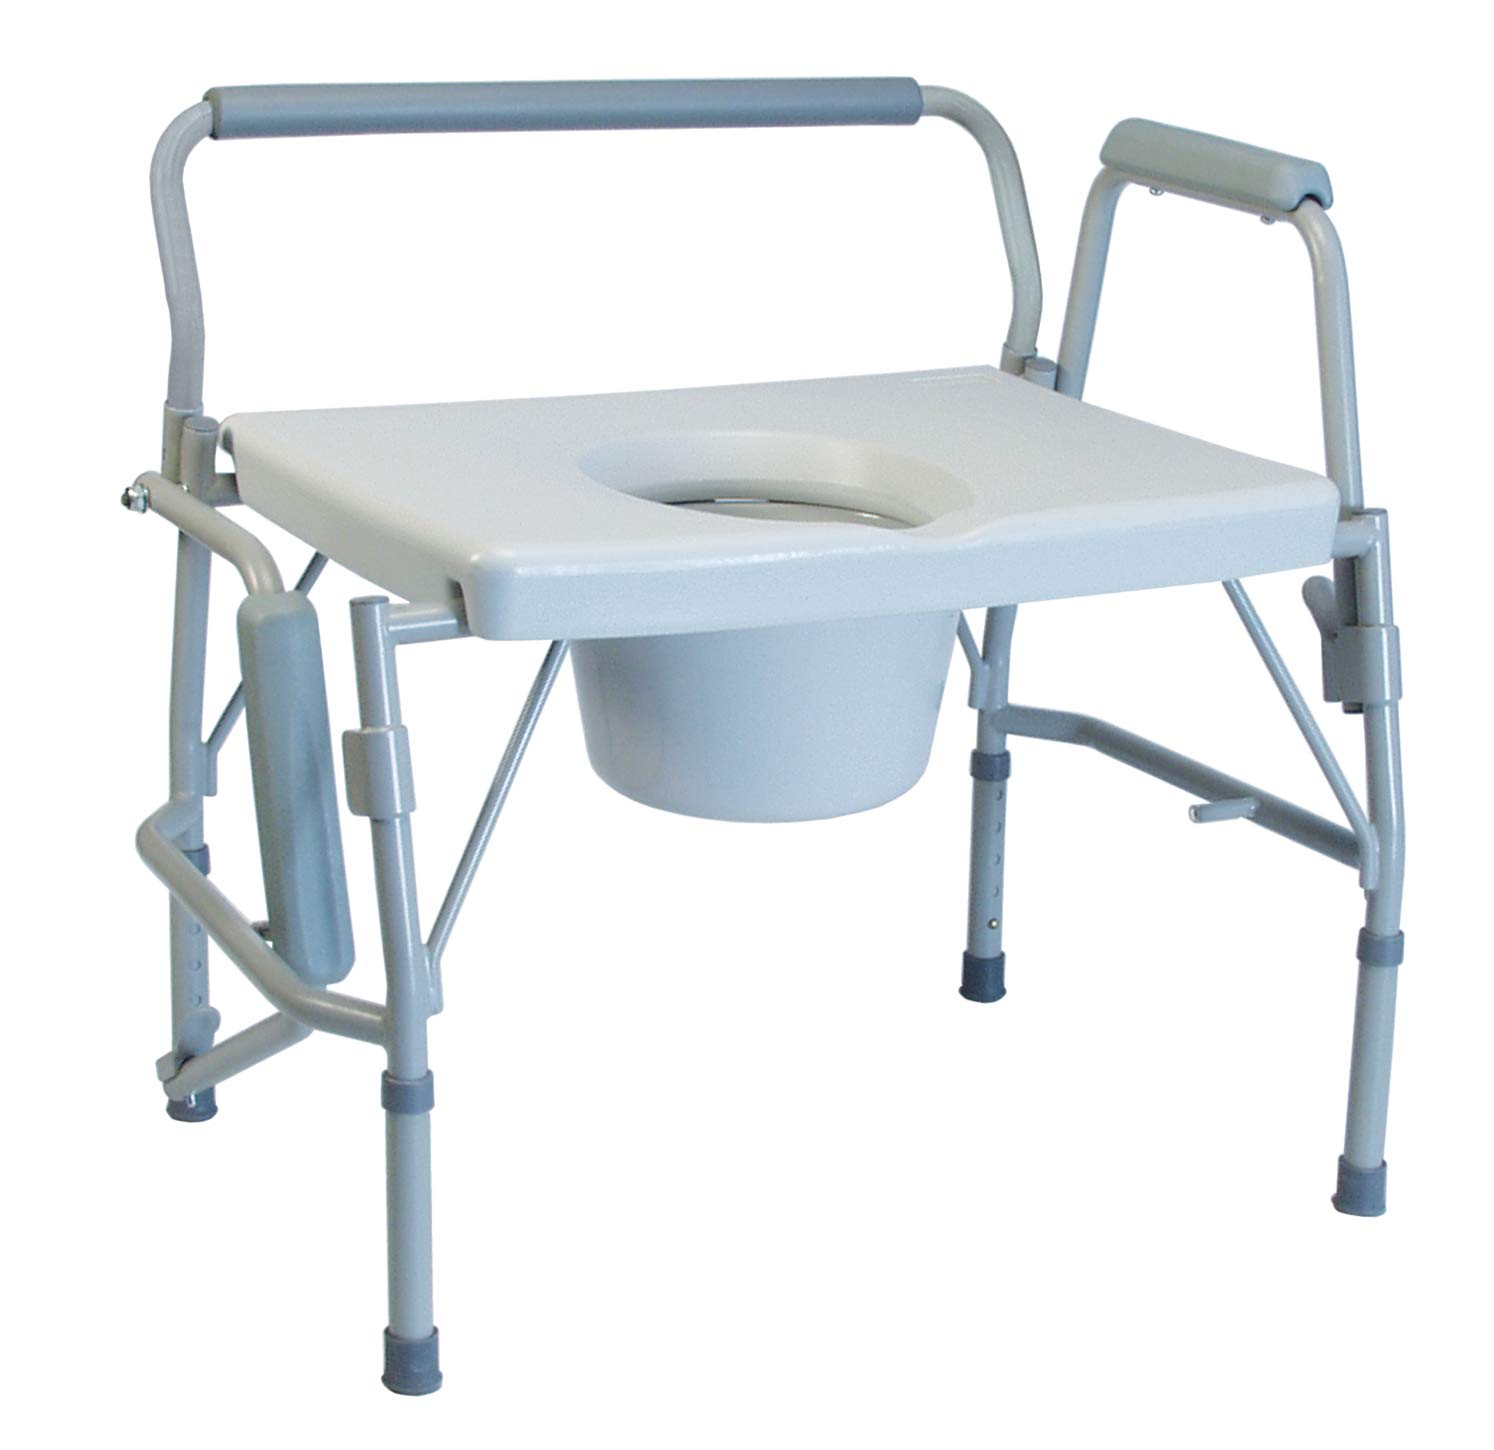 Graham-Field Lumex 3-in-1 Bariatric Bedside Commode, Raised Toilet Seat, and Toilet Safety Rail, 600 lb. Weight Capacity, 6438A